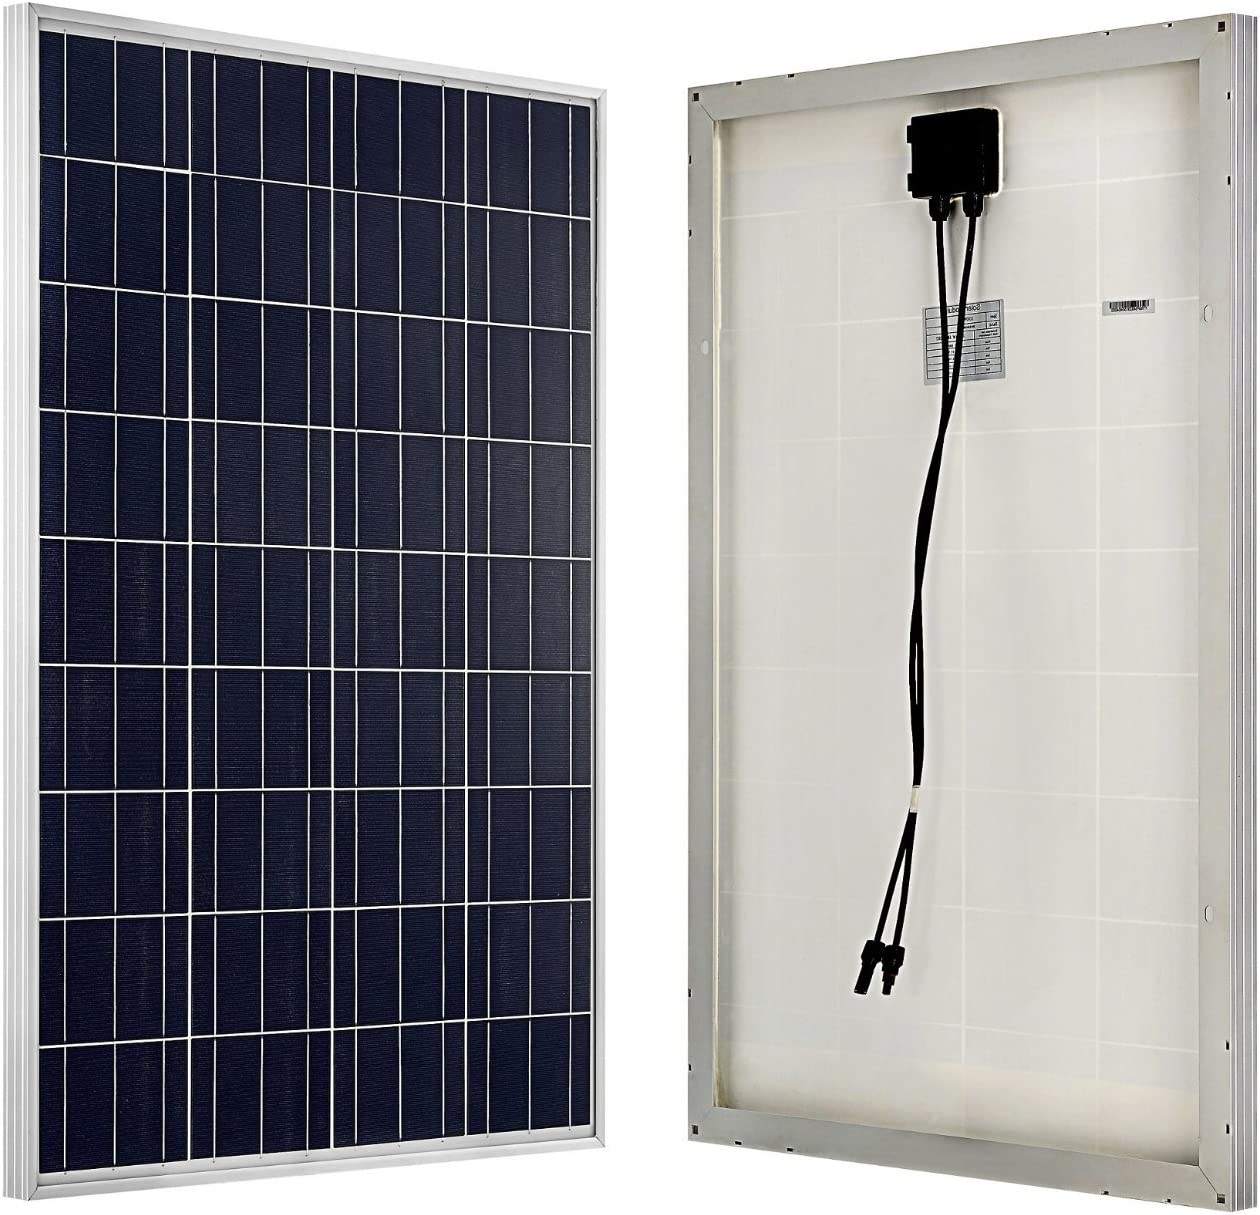 ECO-WORTHY 200 Watts 2pcs 100W Polycrystalline Photovoltaic PV Solar Panel Ideal For 12V Battery Charging On Boats Caravans Motorhome RV